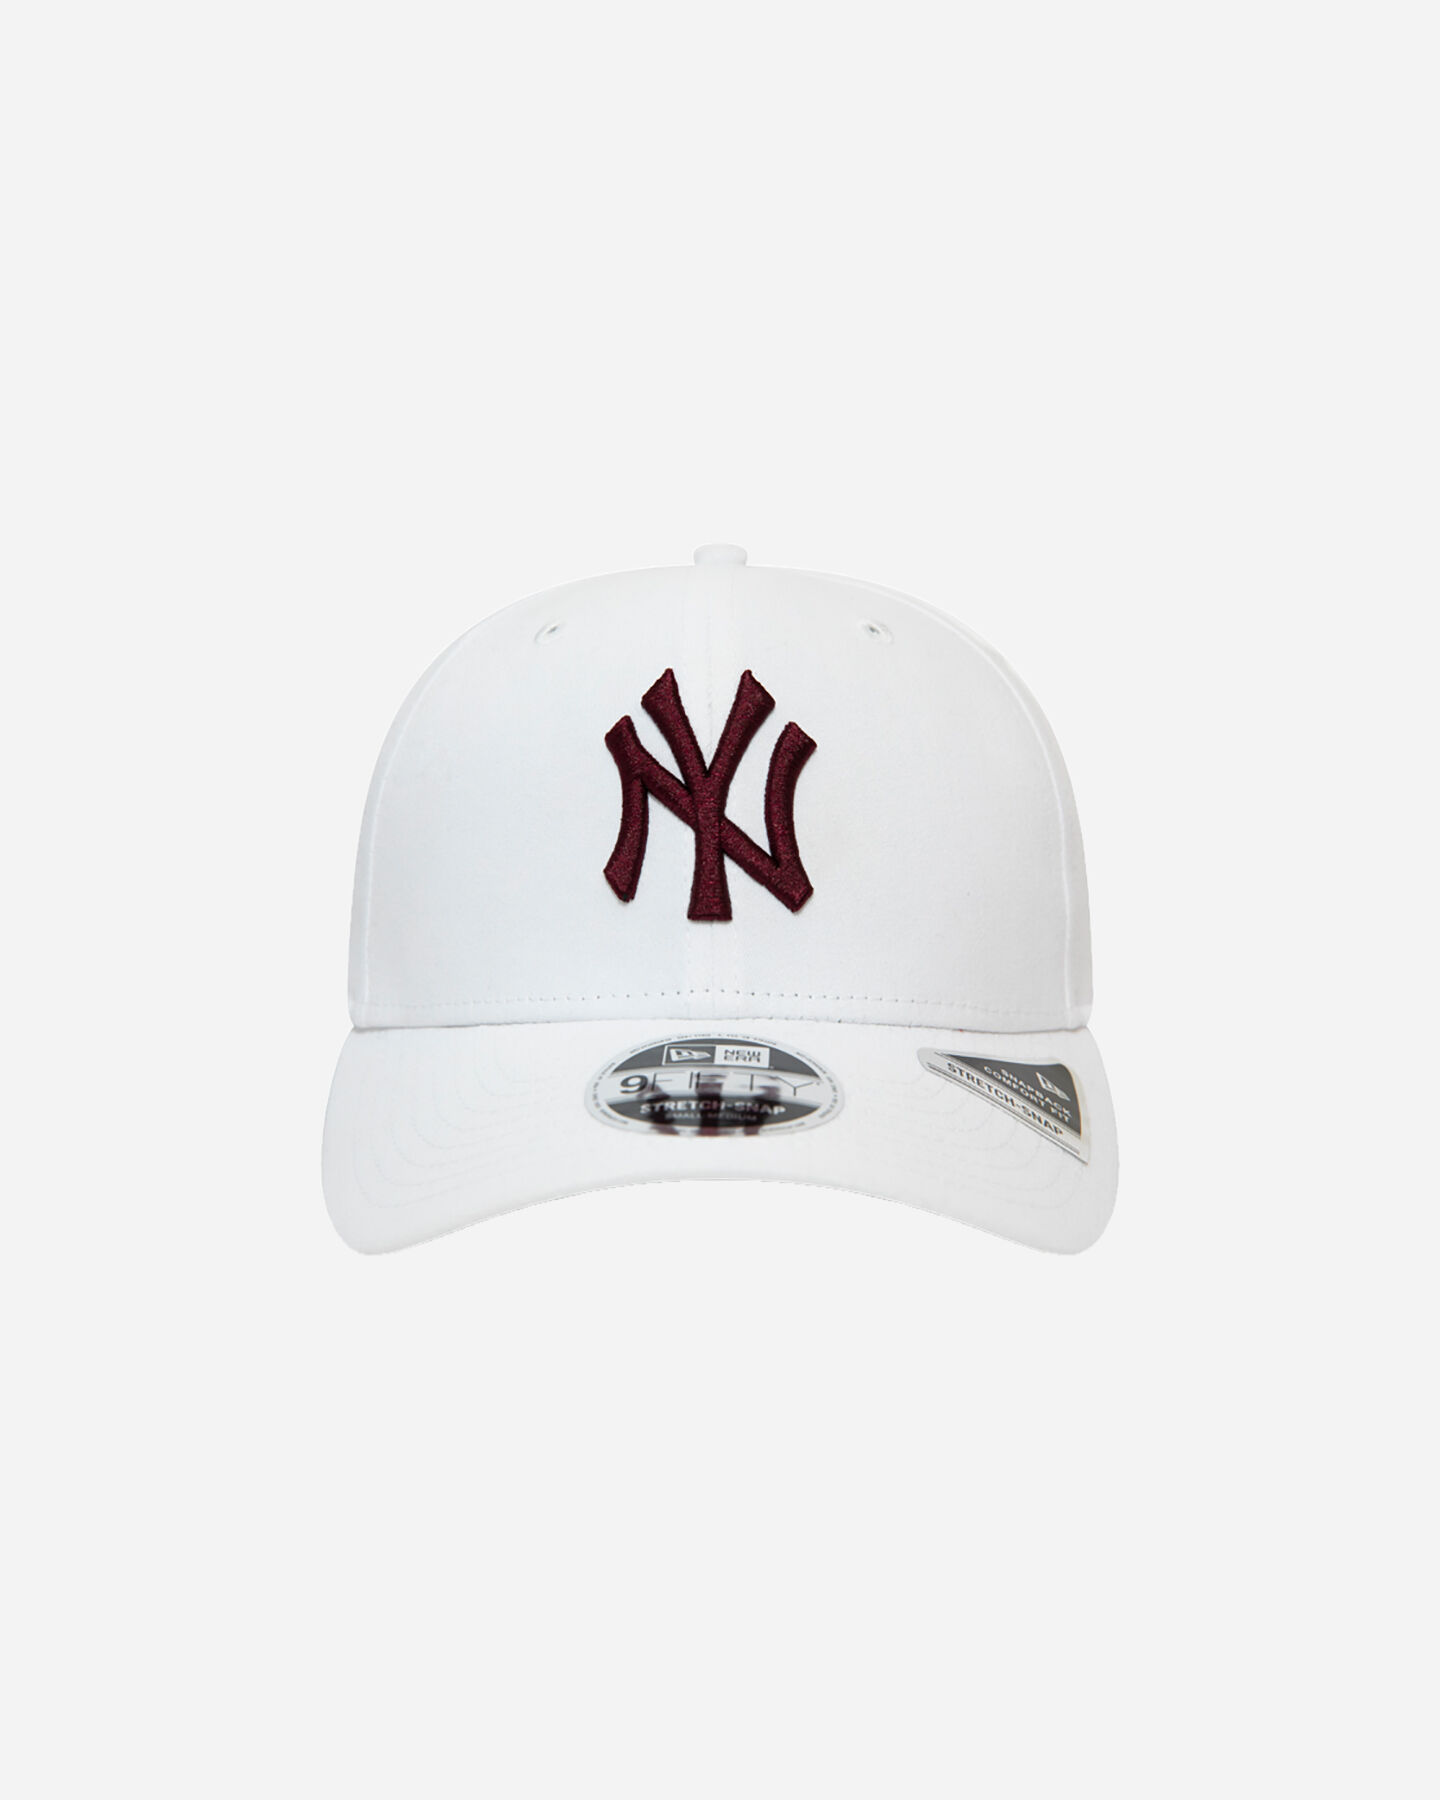 Cappellino NEW ERA NEW YORK YANKEES 9FIFTY STRETCH S5170056 scatto 1